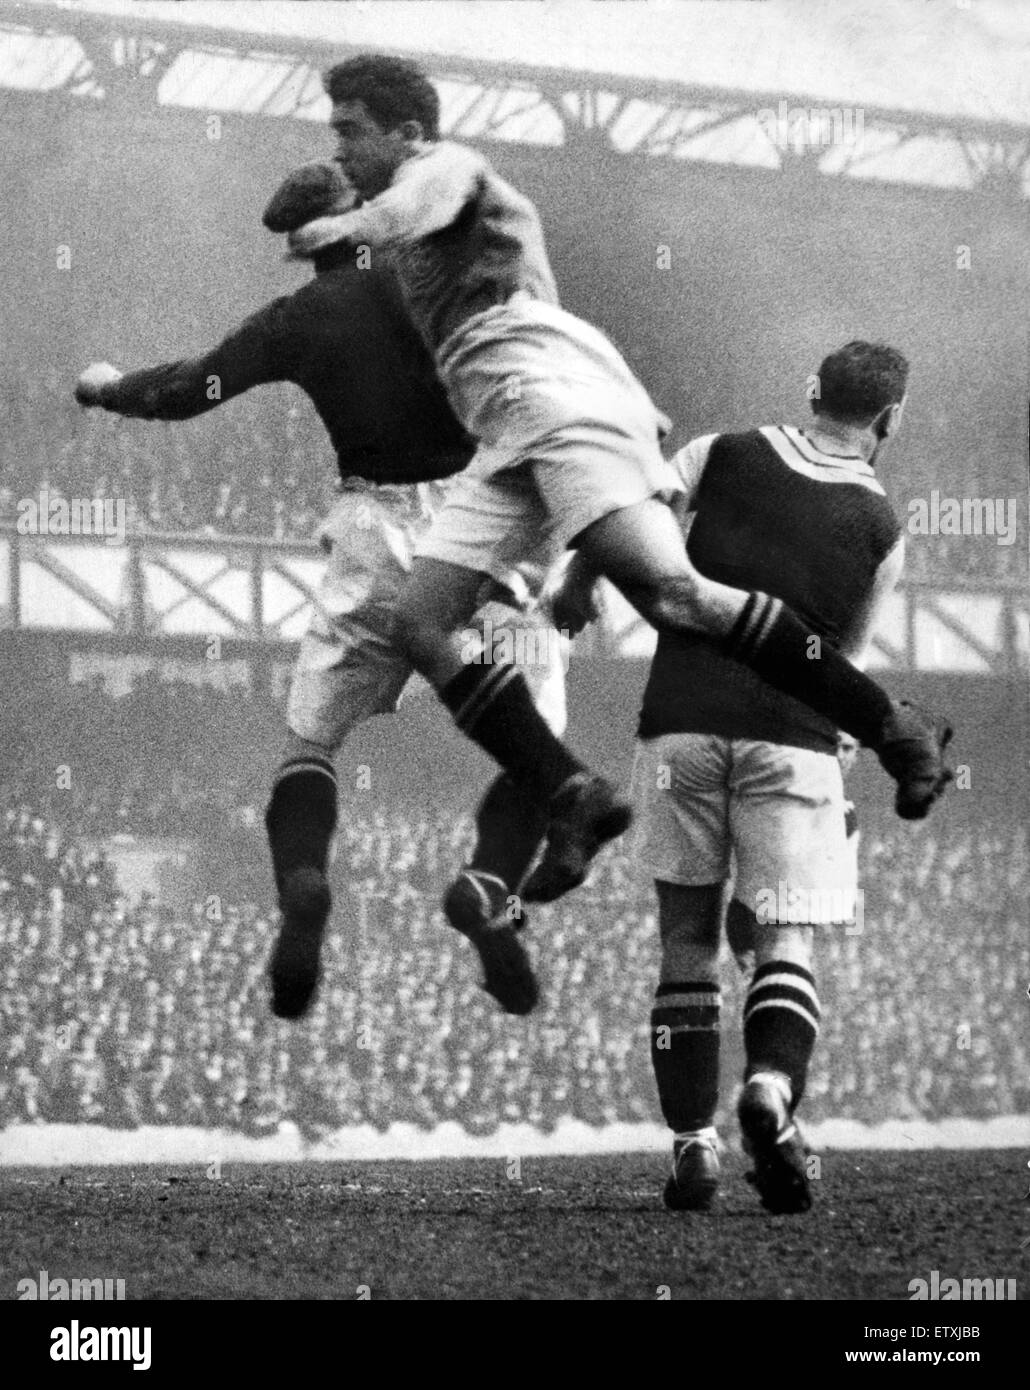 Everton footballer Dixie Dean in action for his team during a